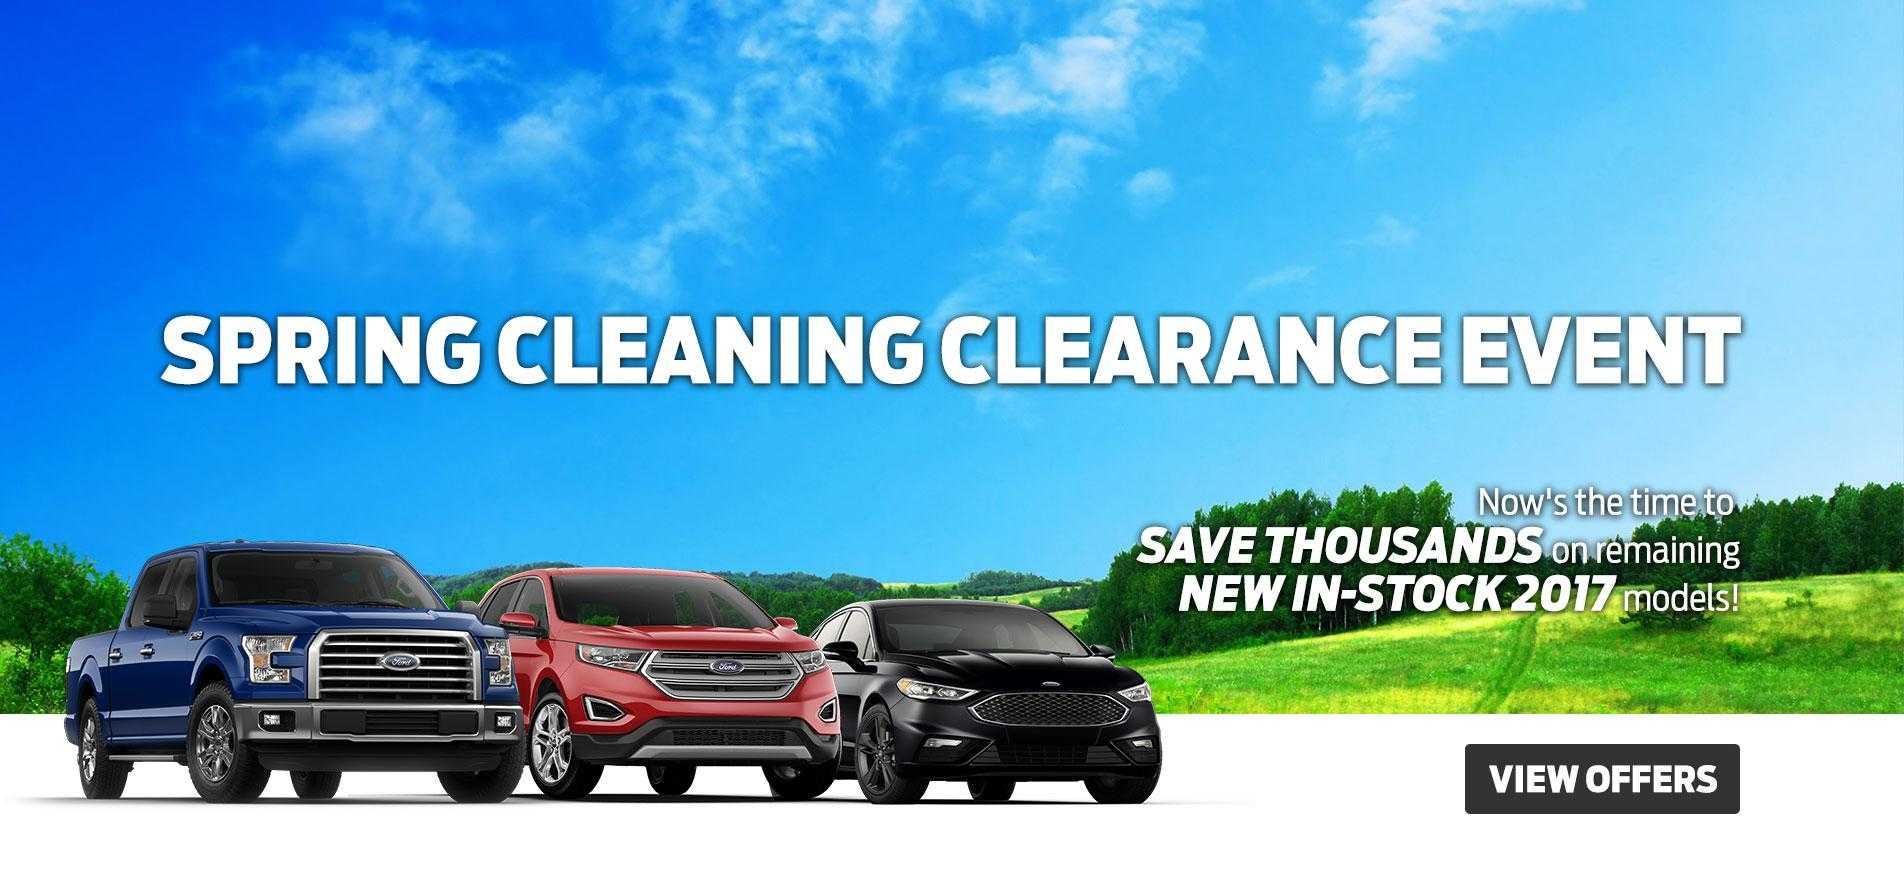 2017 Spring Clearance Glenoak Ford Downtown